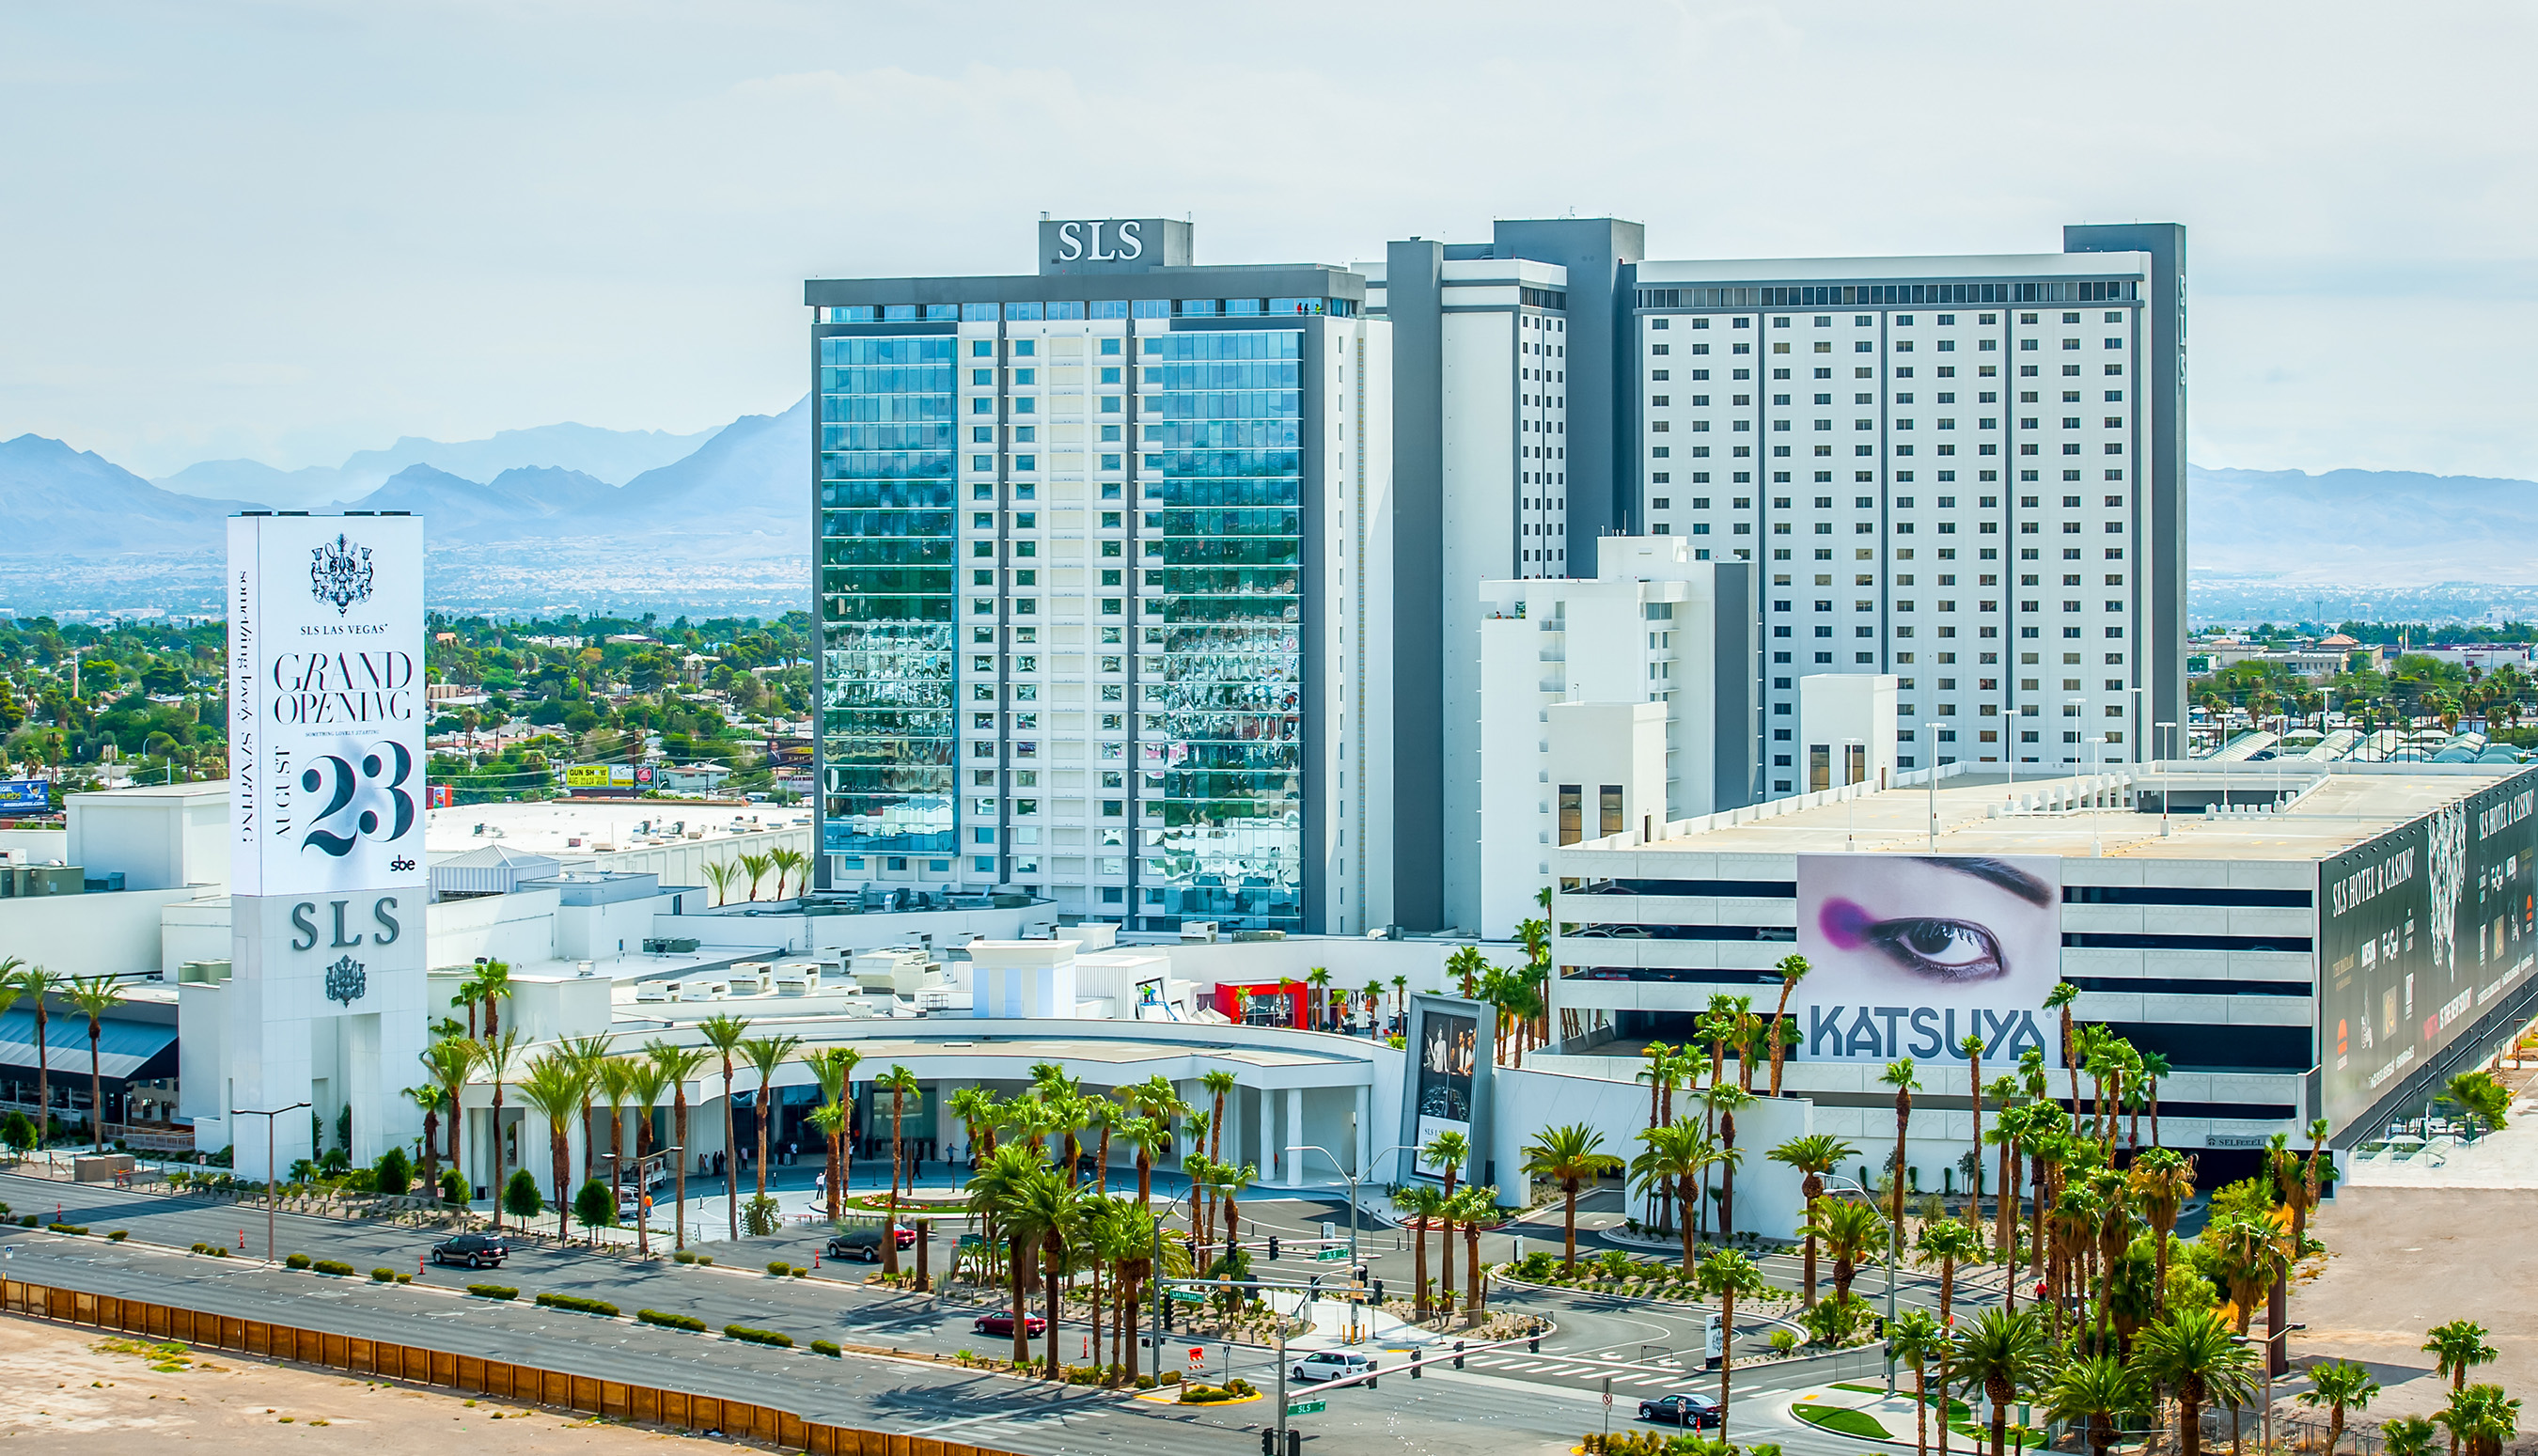 Sls las vegas debuts as first major las vegas resort for Hotel concepts